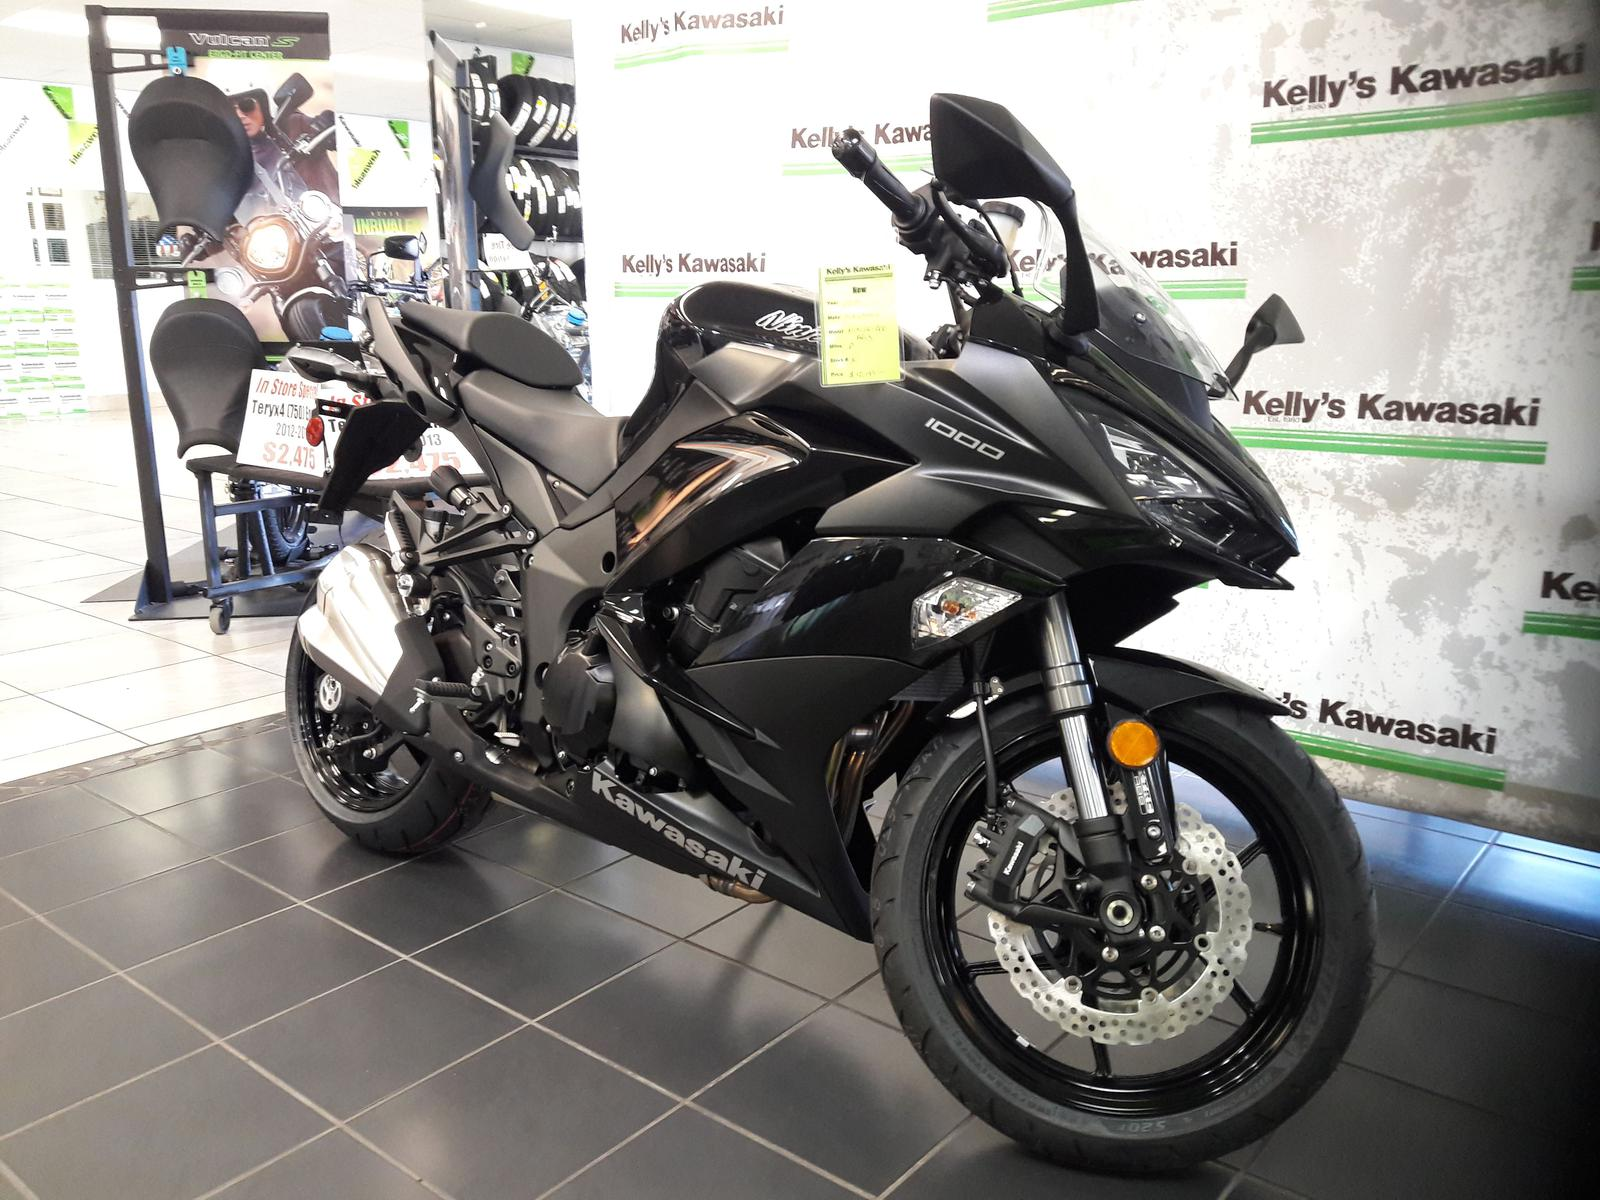 2019 Kawasaki Ninja 1000 Abs For Sale In Mesa Az Kellys Kawasaki